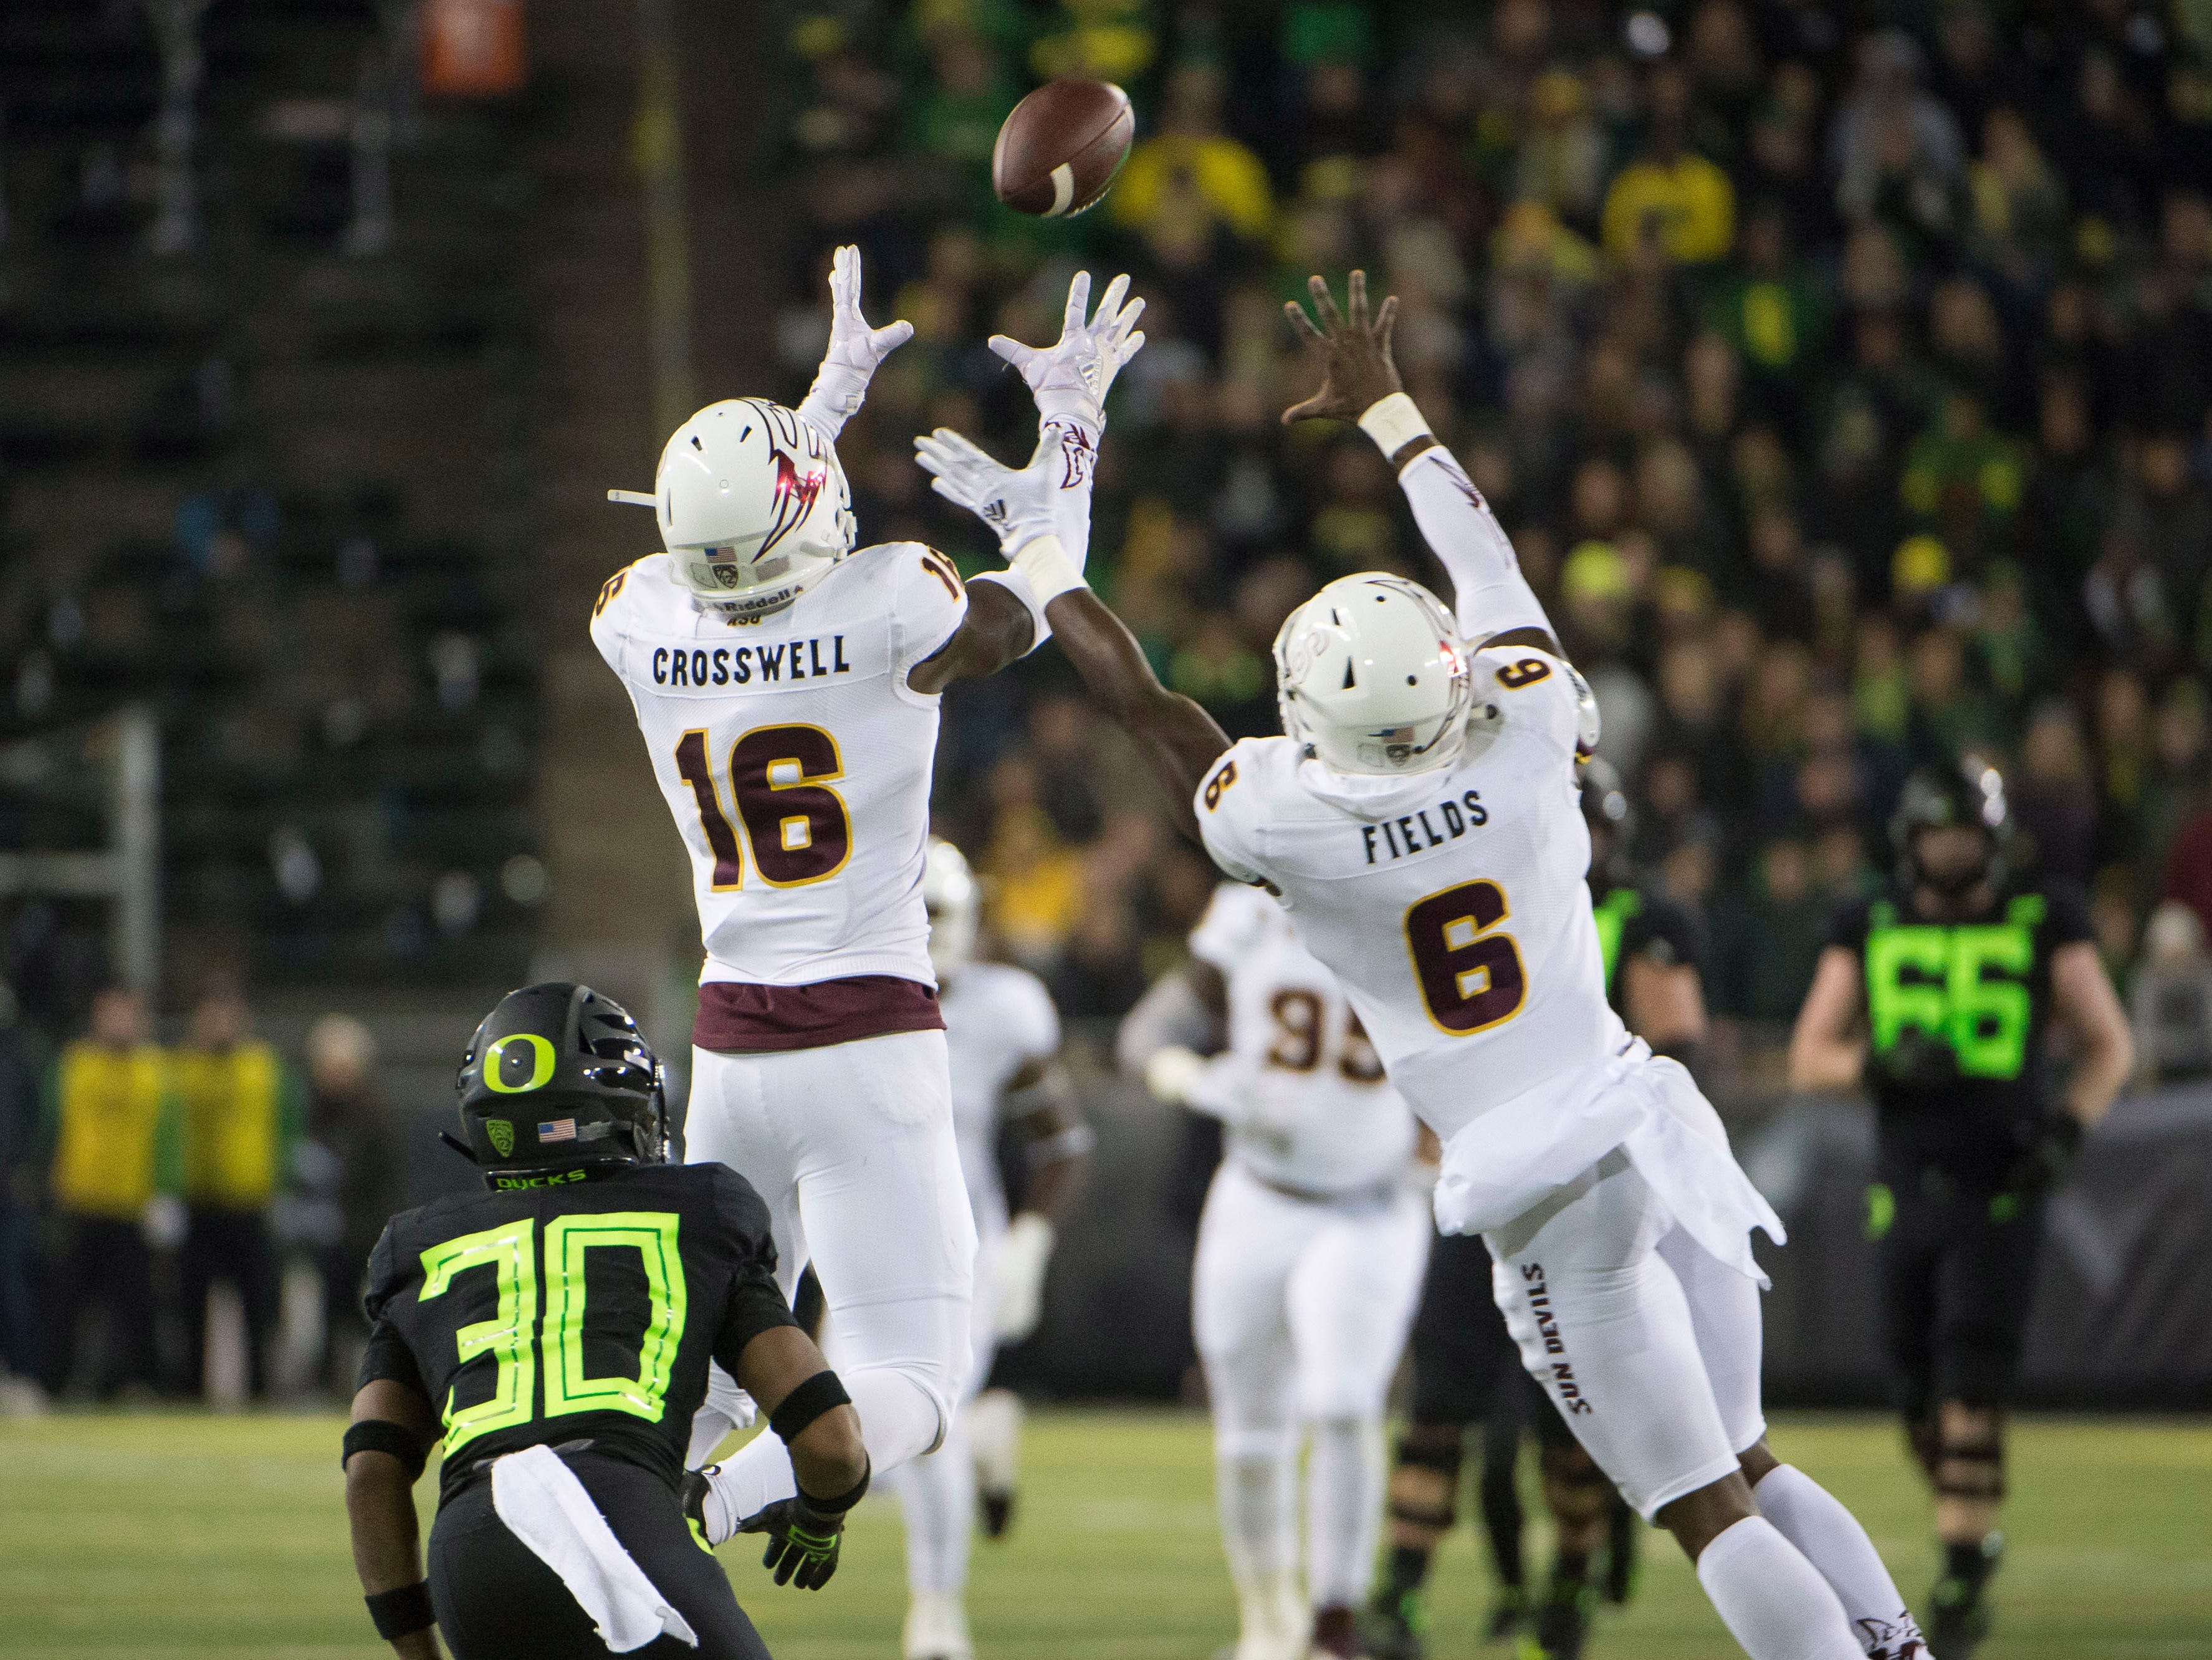 Nov 17, 2018; Eugene, OR, USA; Arizona State Sun Devils safety Aashari Crosswell (16) intercepts a pass during the first half intended for Oregon Ducks wide receiver Jaylon Redd (30) at Autzen Stadium. Mandatory Credit: Troy Wayrynen-USA TODAY Sports